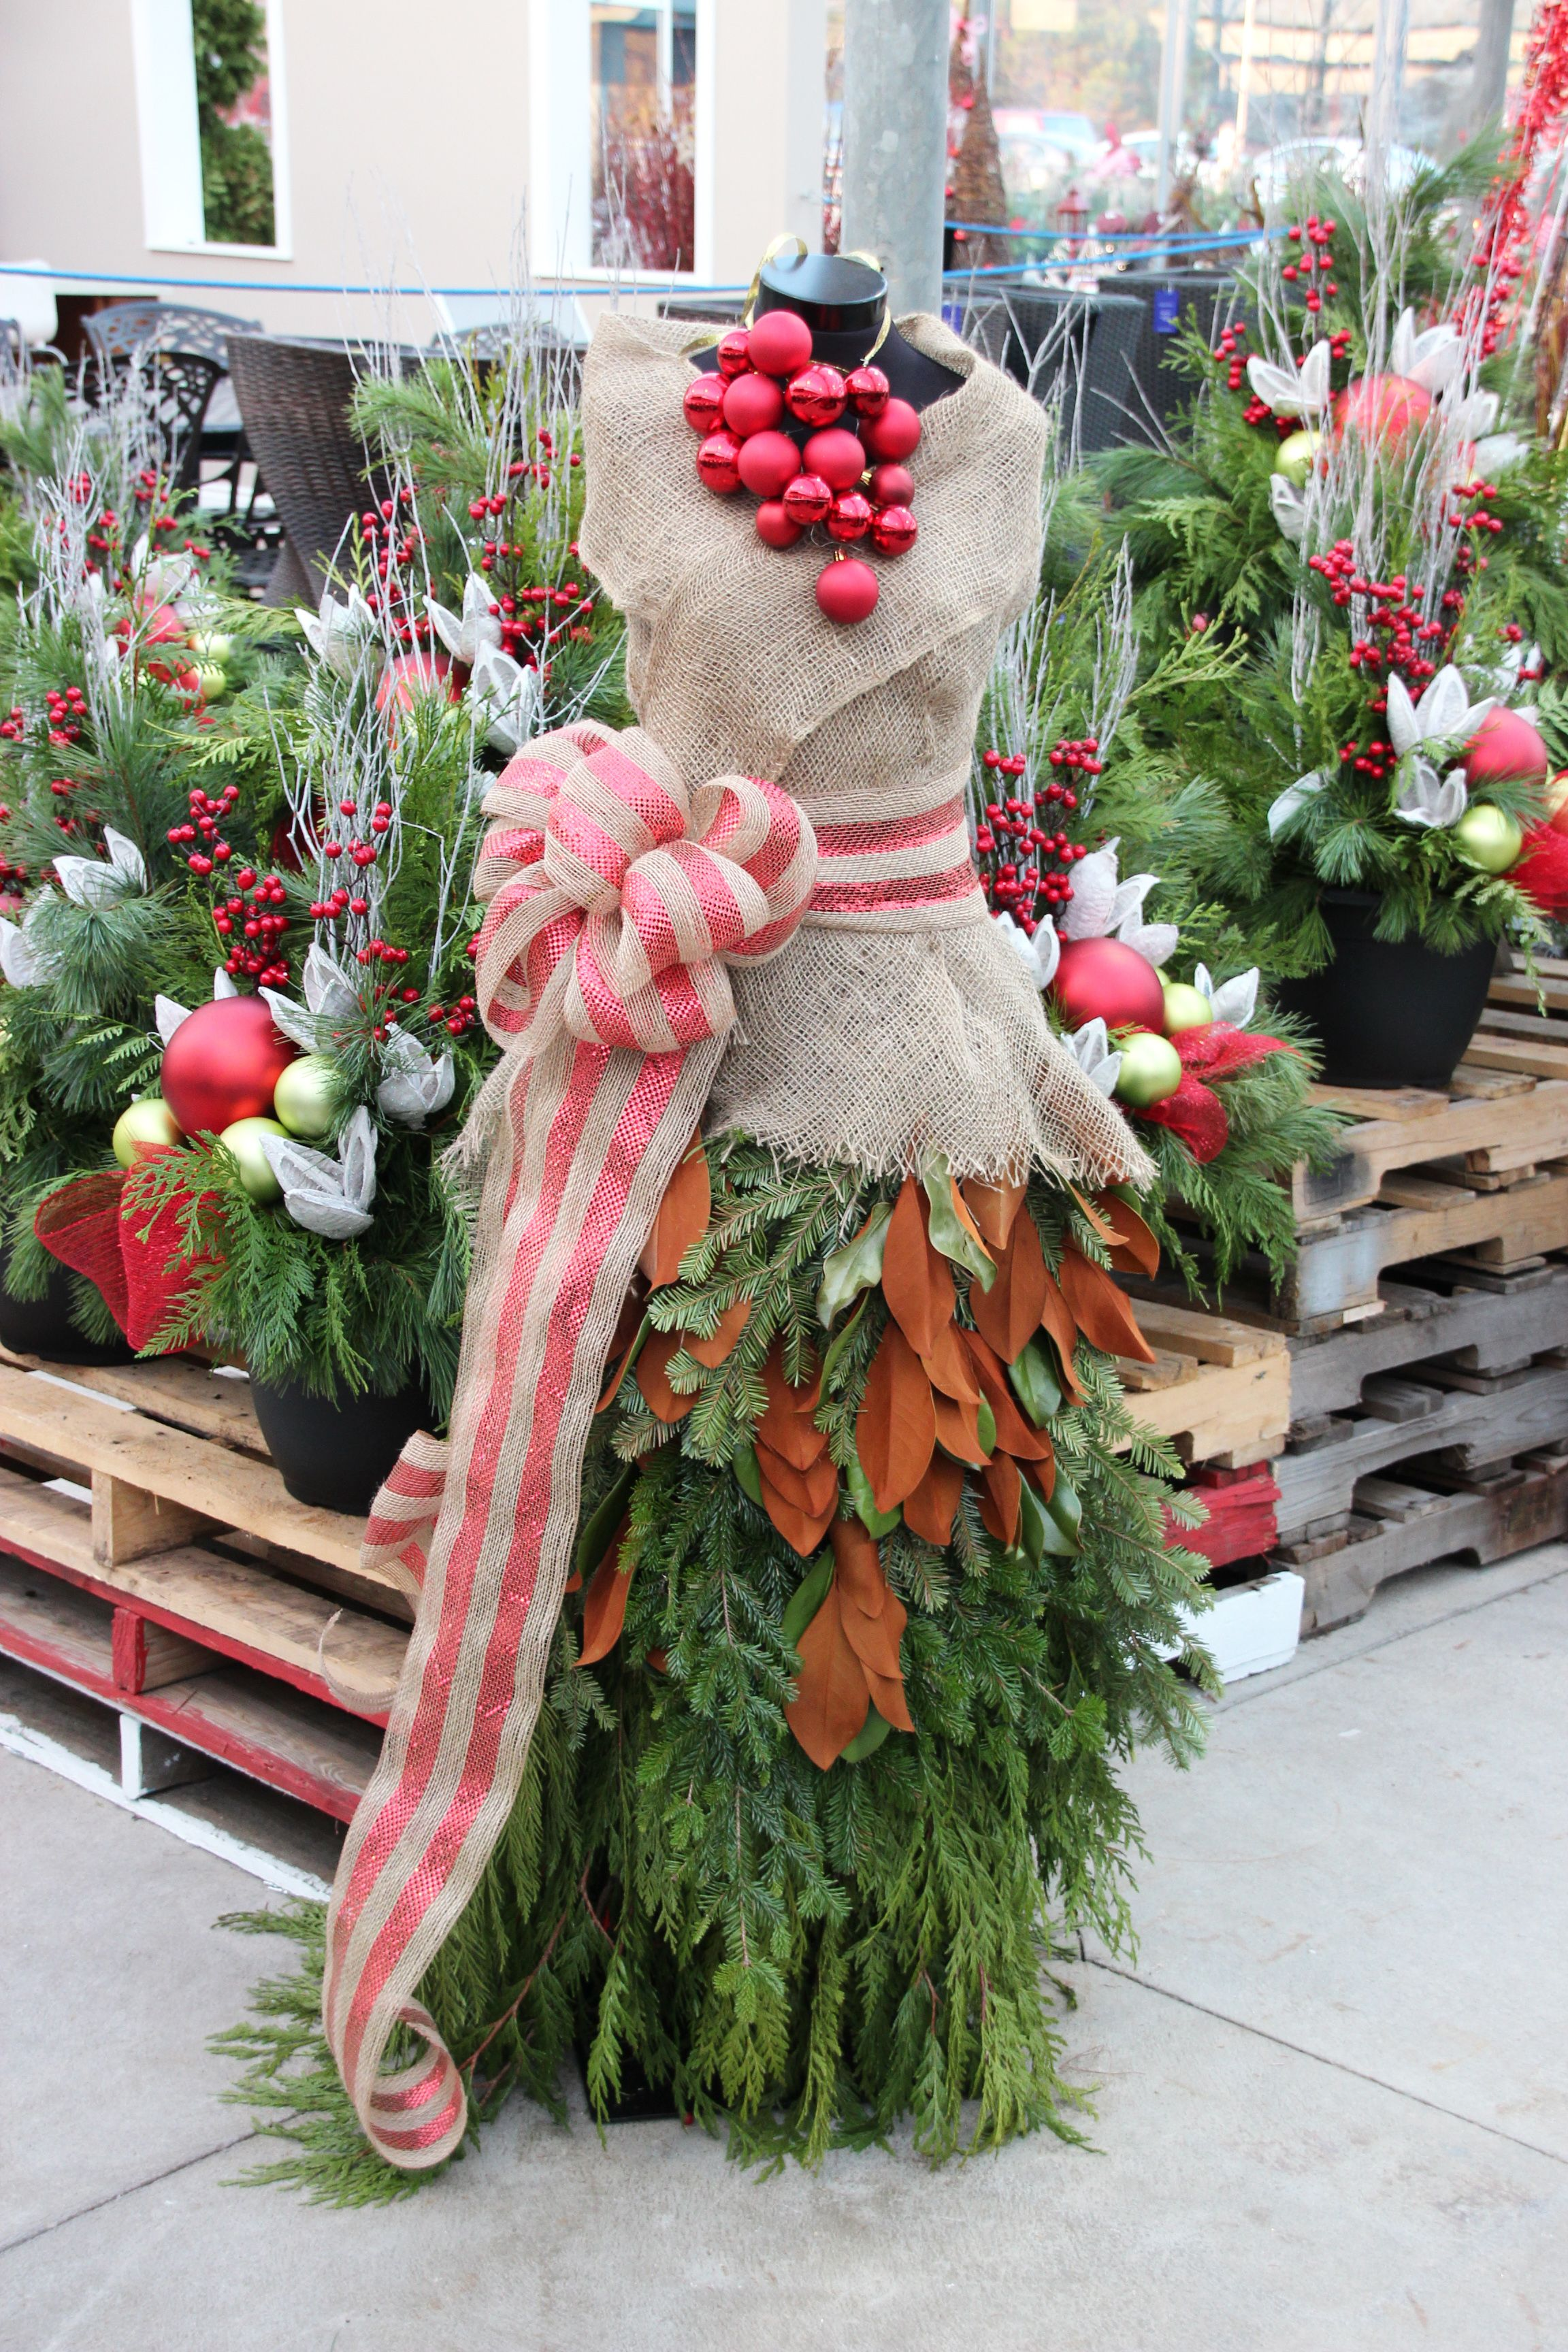 Christmas Outdoor Evergreens Made Into A Fashionable Holiday Dress